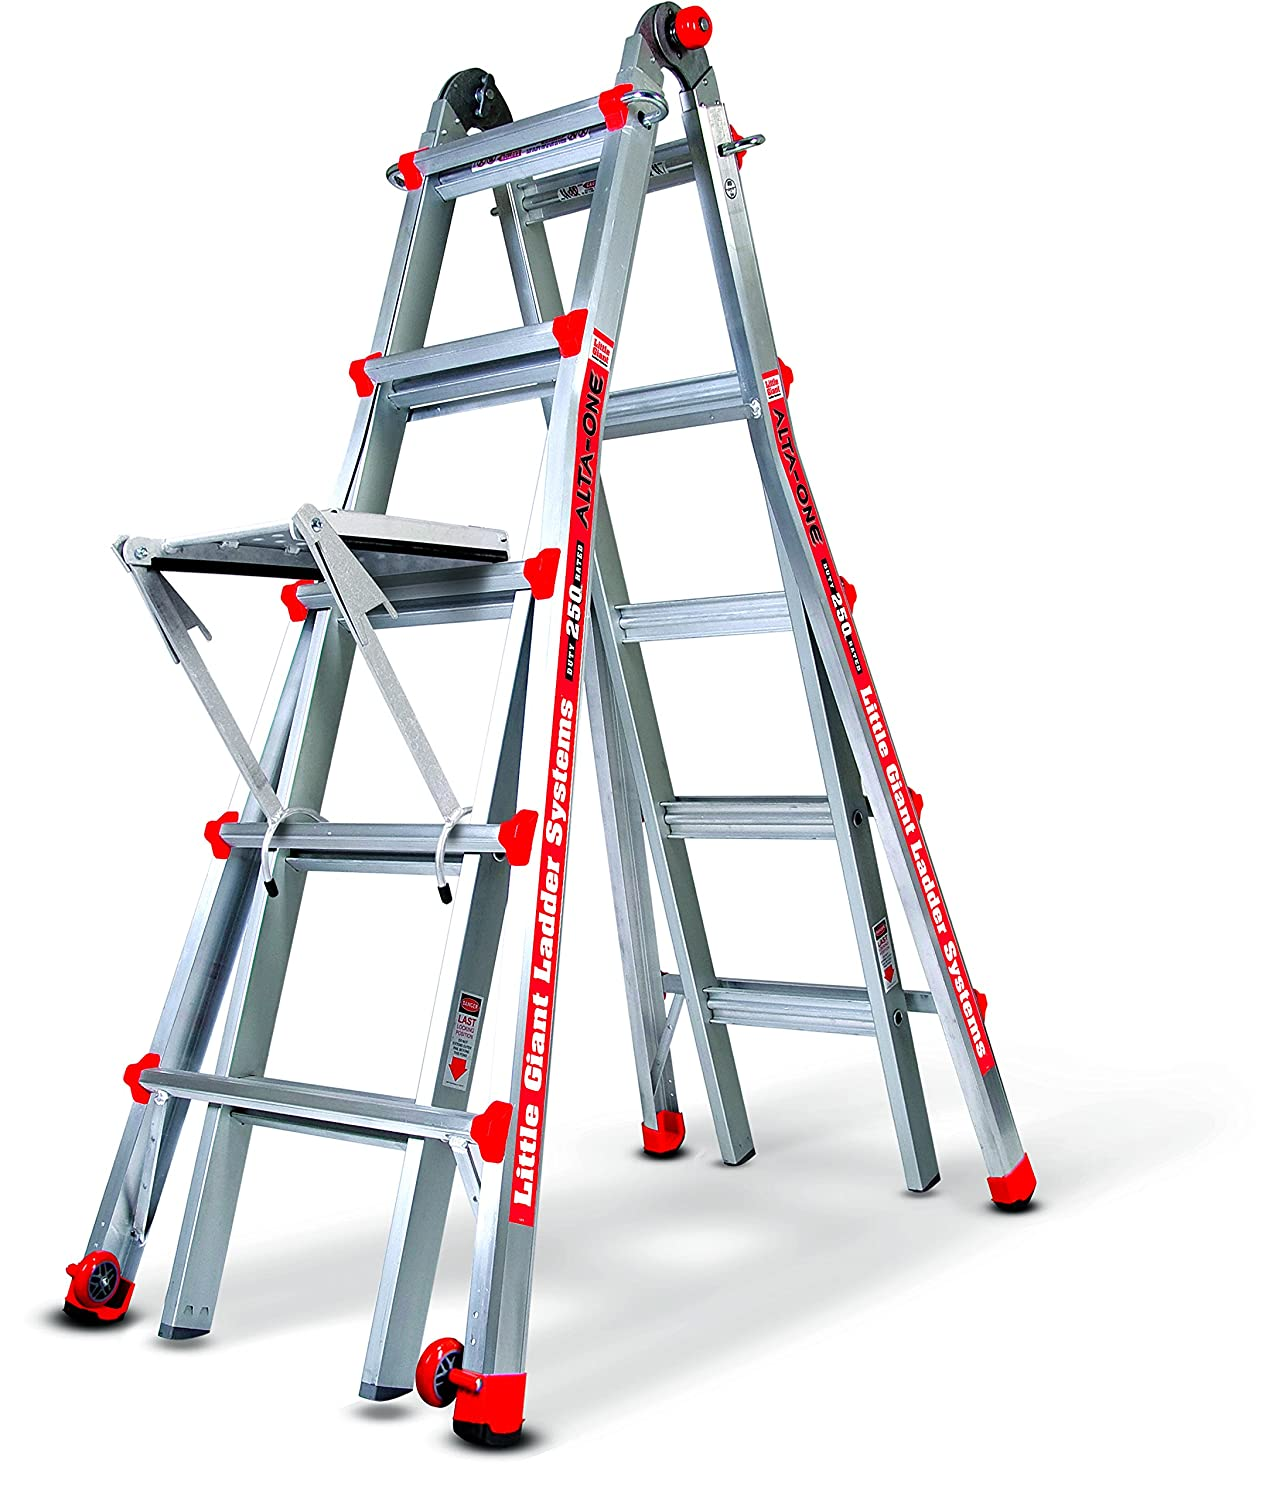 Little Giant 17 Foot Ladder With Work Platform Amazon